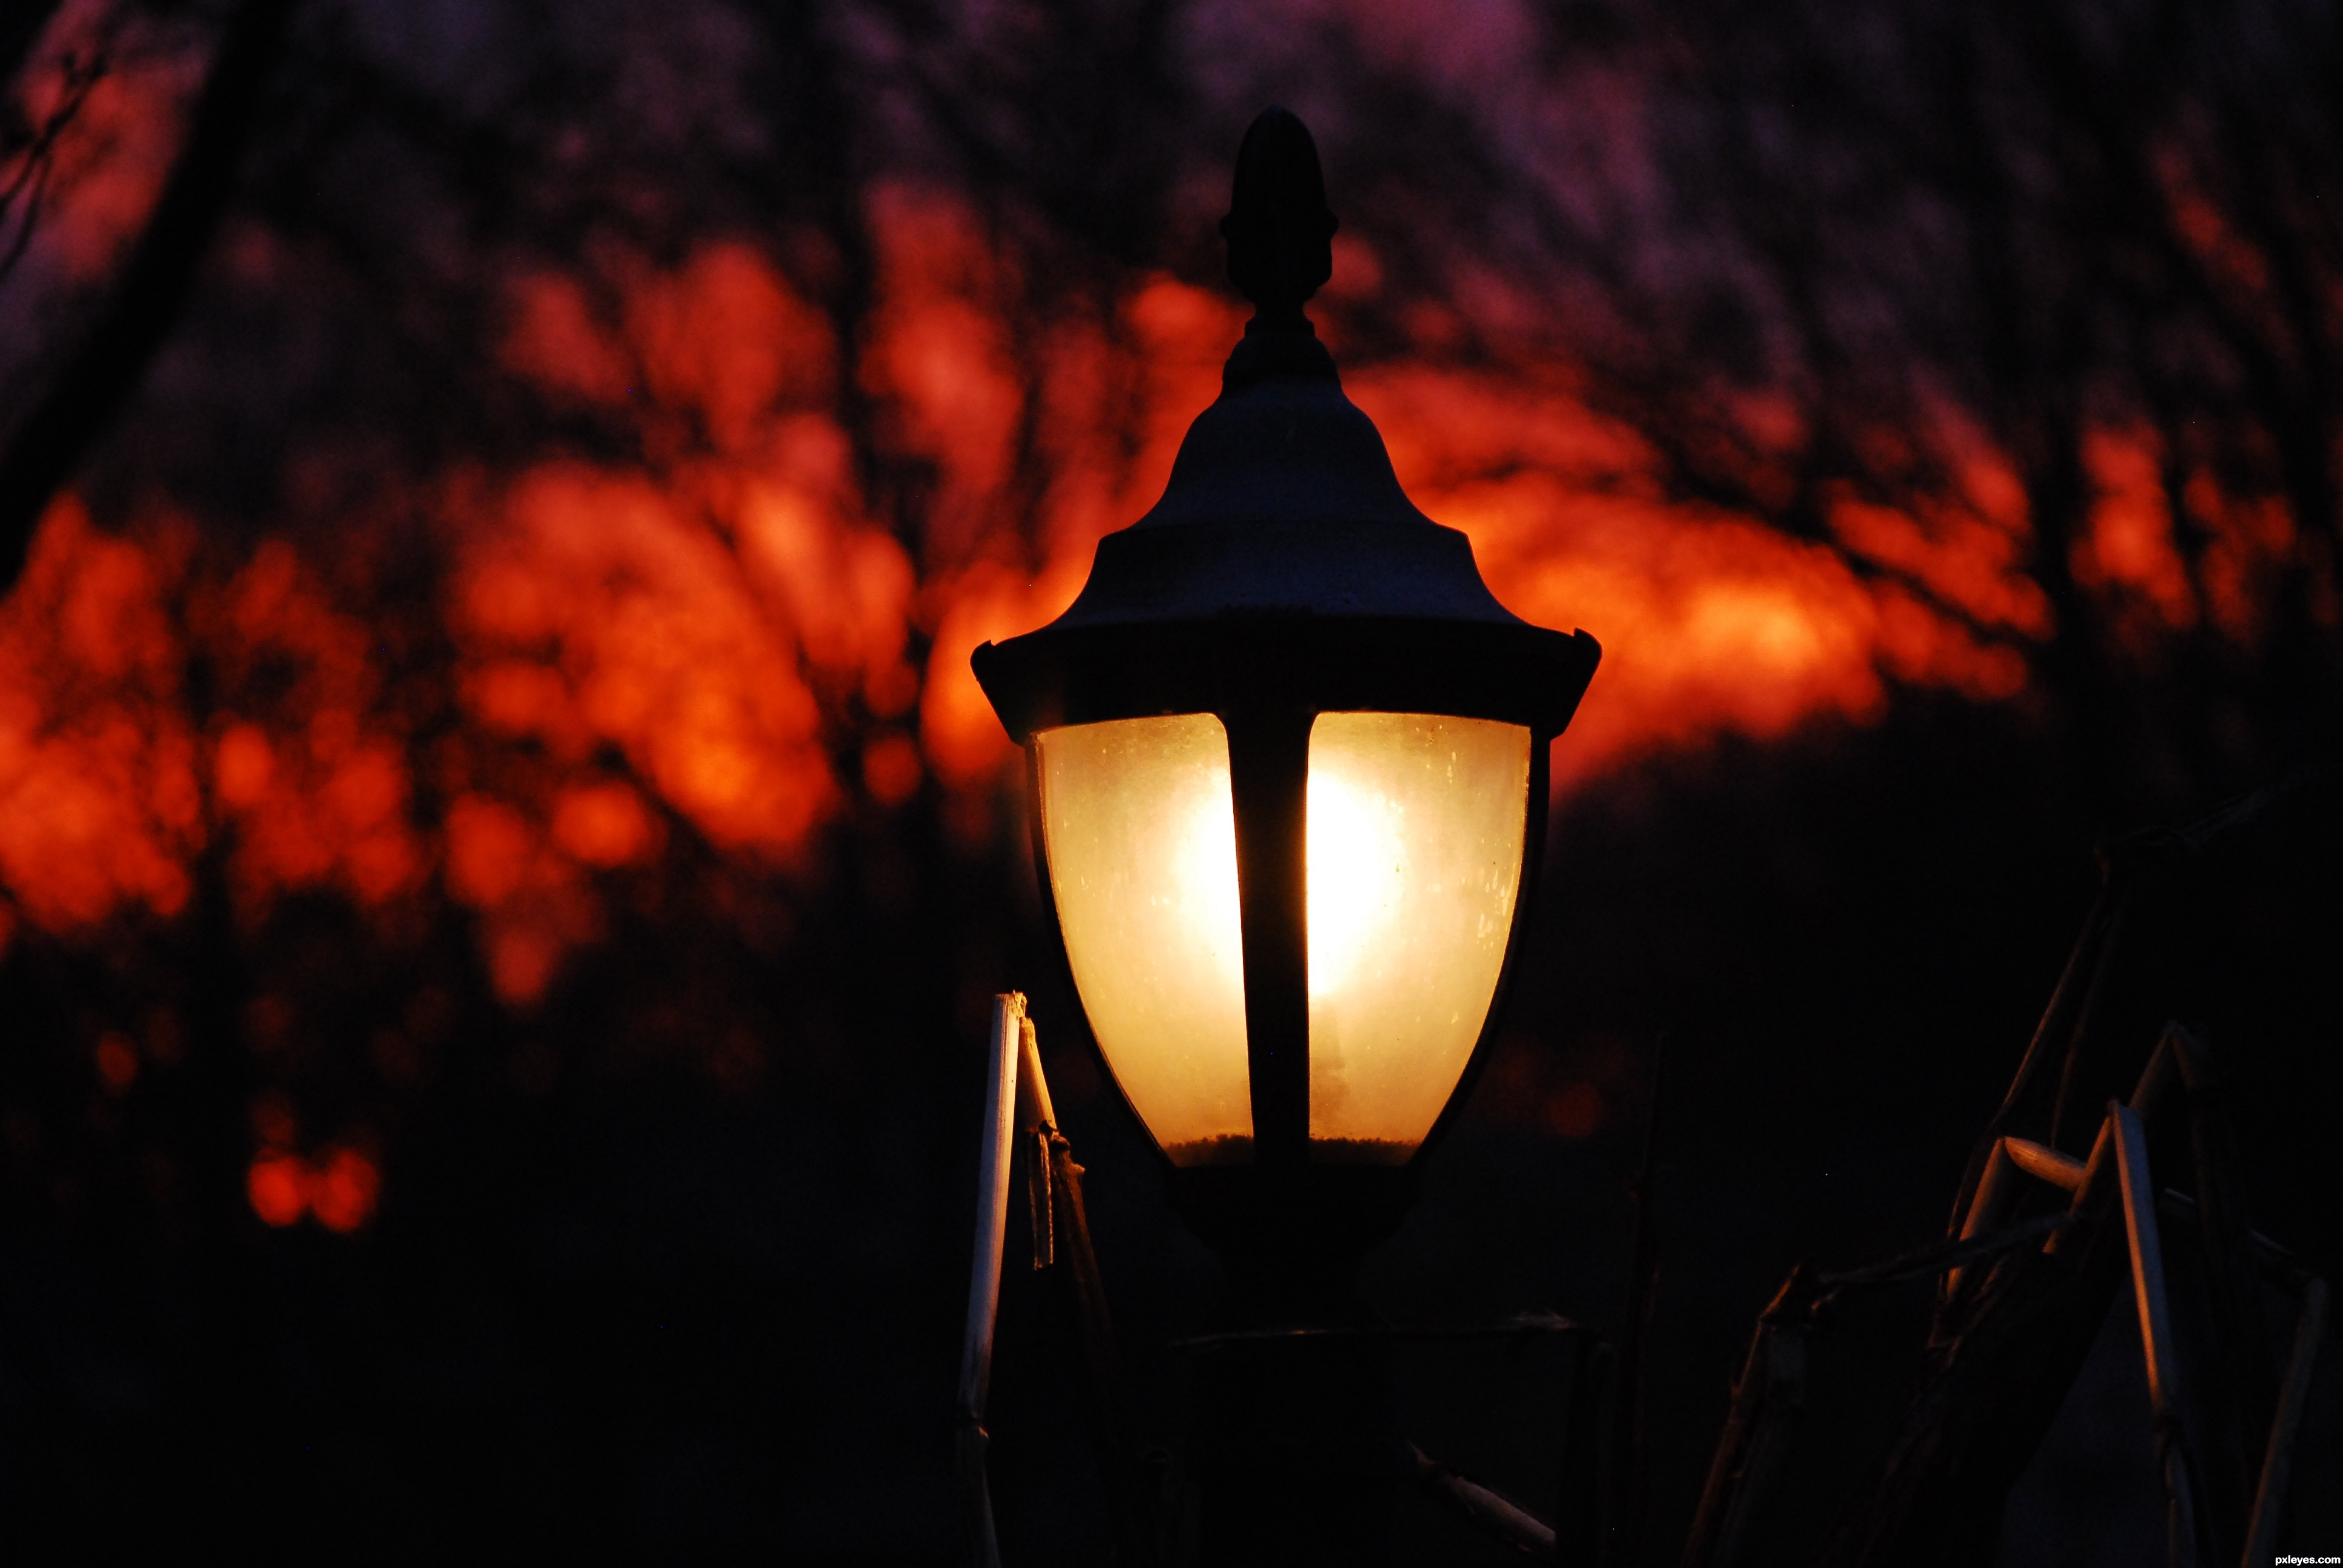 sunset house lamp picture, by Momof4boyoboys for: night lights ... for Night Lamp Photography  lp5fsj